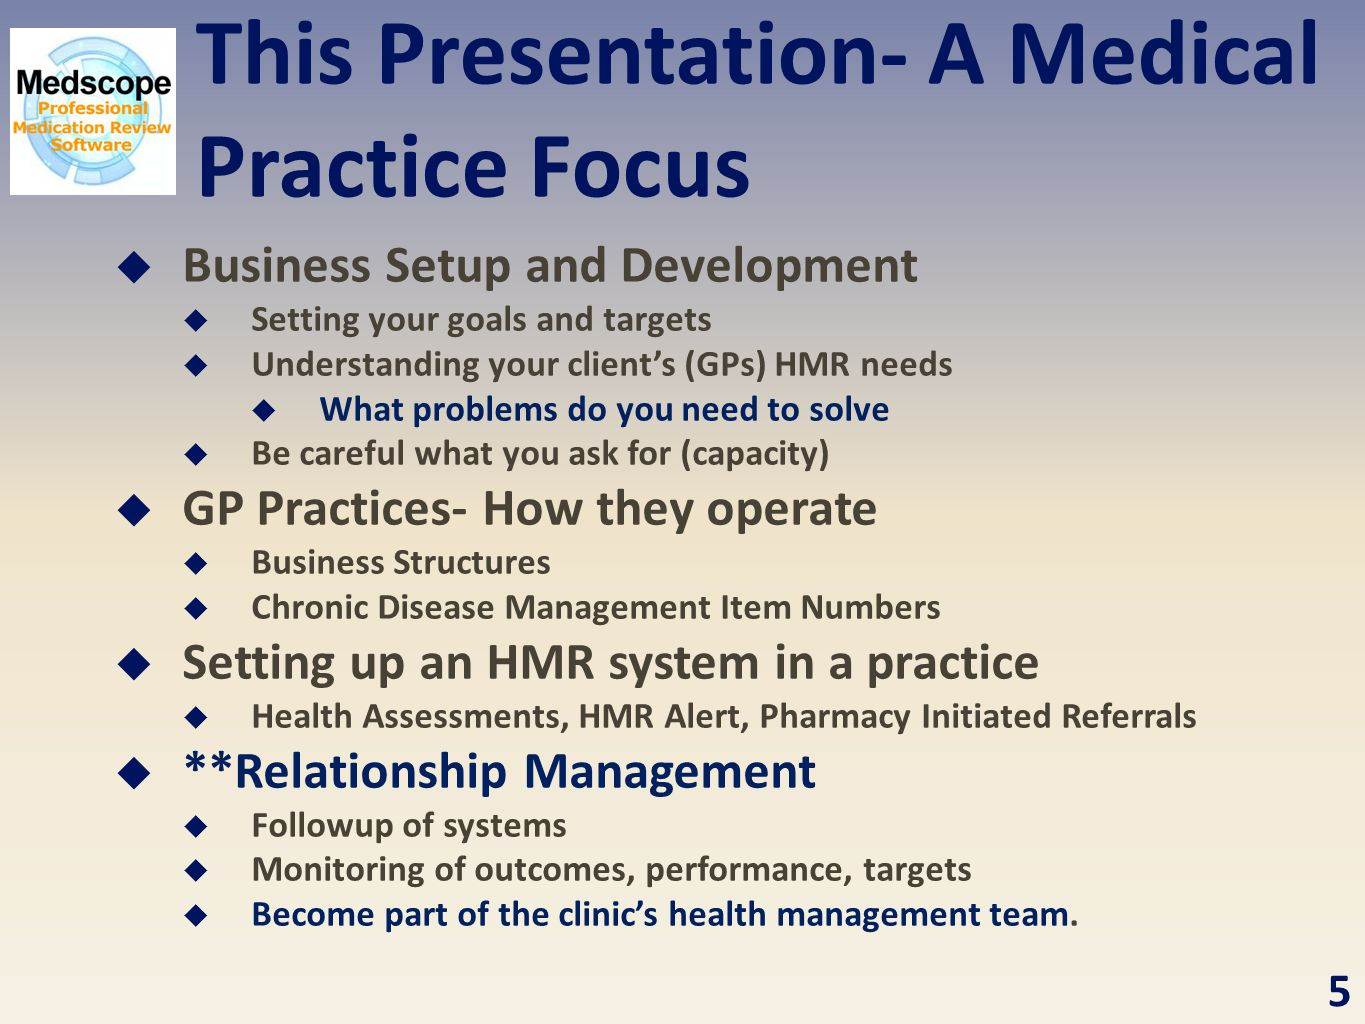 This Presentation- A Medical Practice Focus